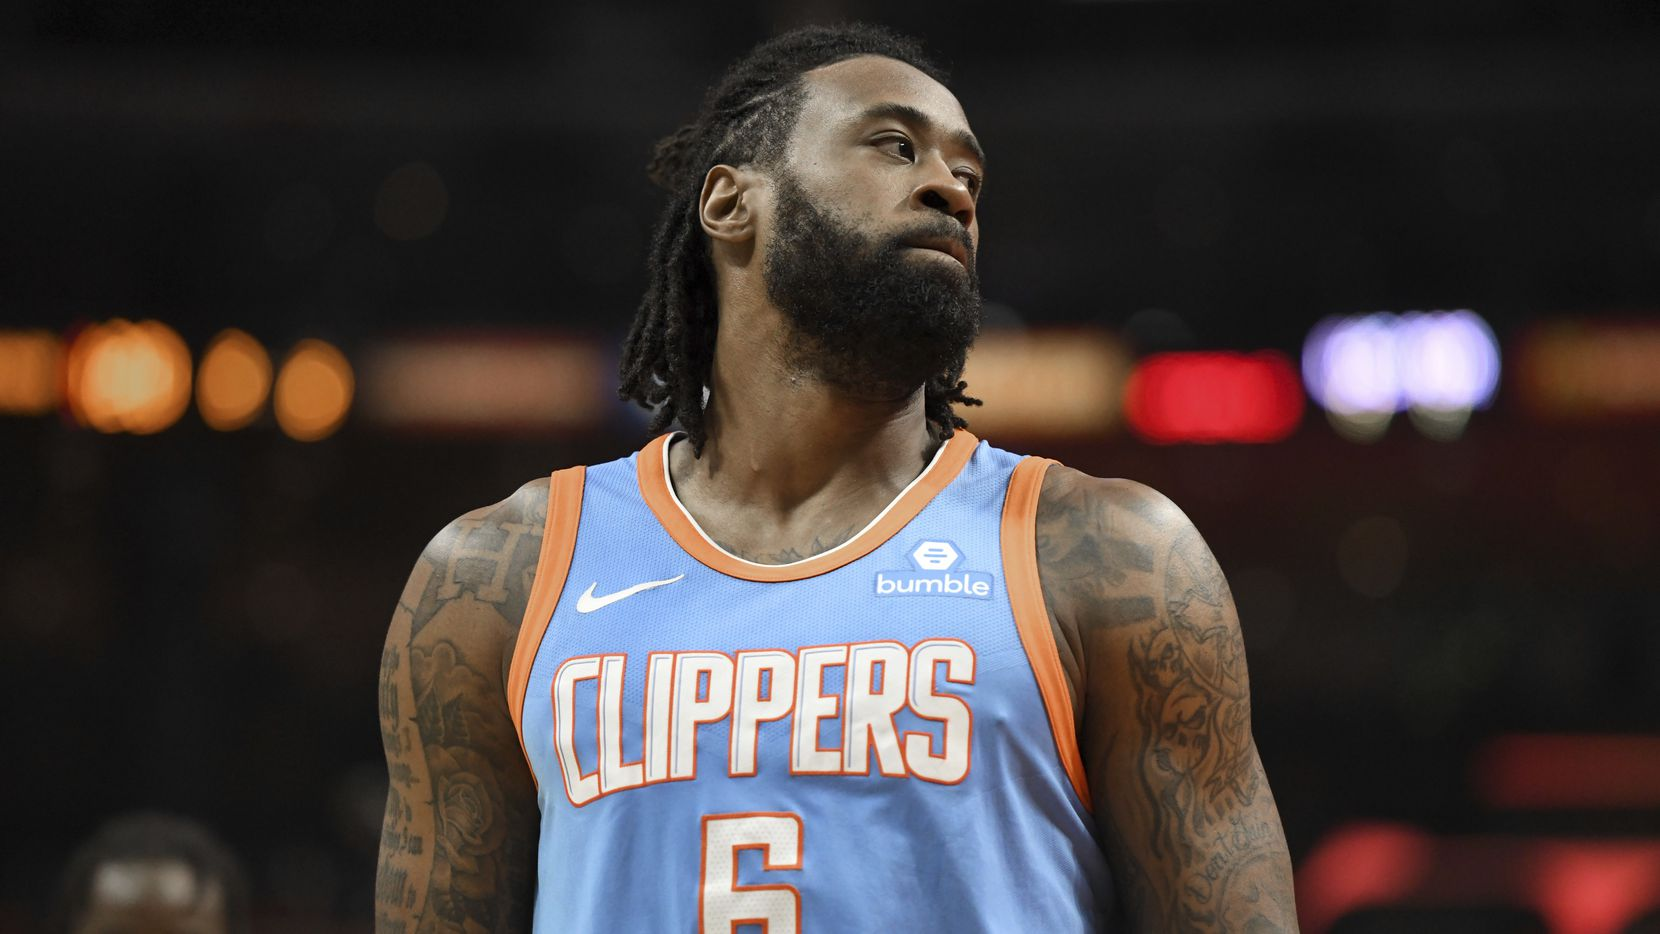 Los Angeles Clippers center DeAndre Jordan (6) looks on as the Portland Trail Blazers extend their lead during a game on Sunday, March 18, 2018, in Los Angeles. (AP Photo/Michael Owen Baker)